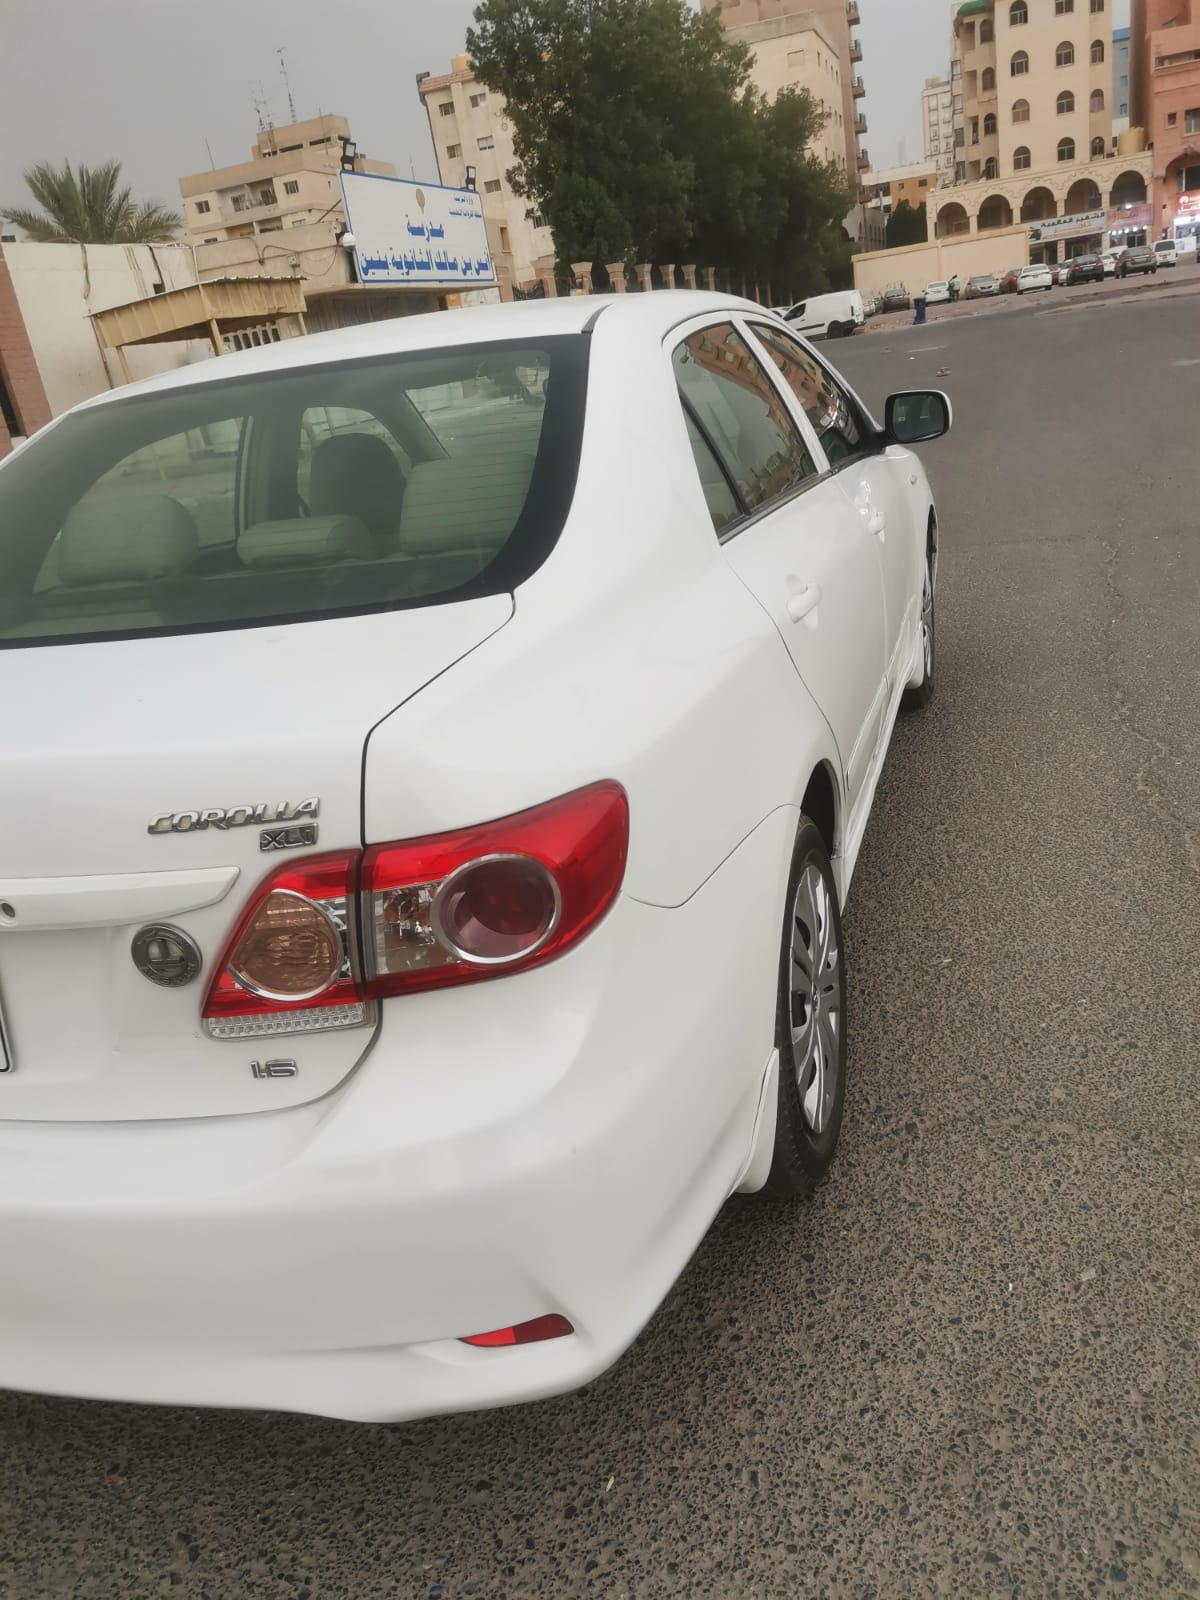 Toyota corolla for sale in excellent condition.